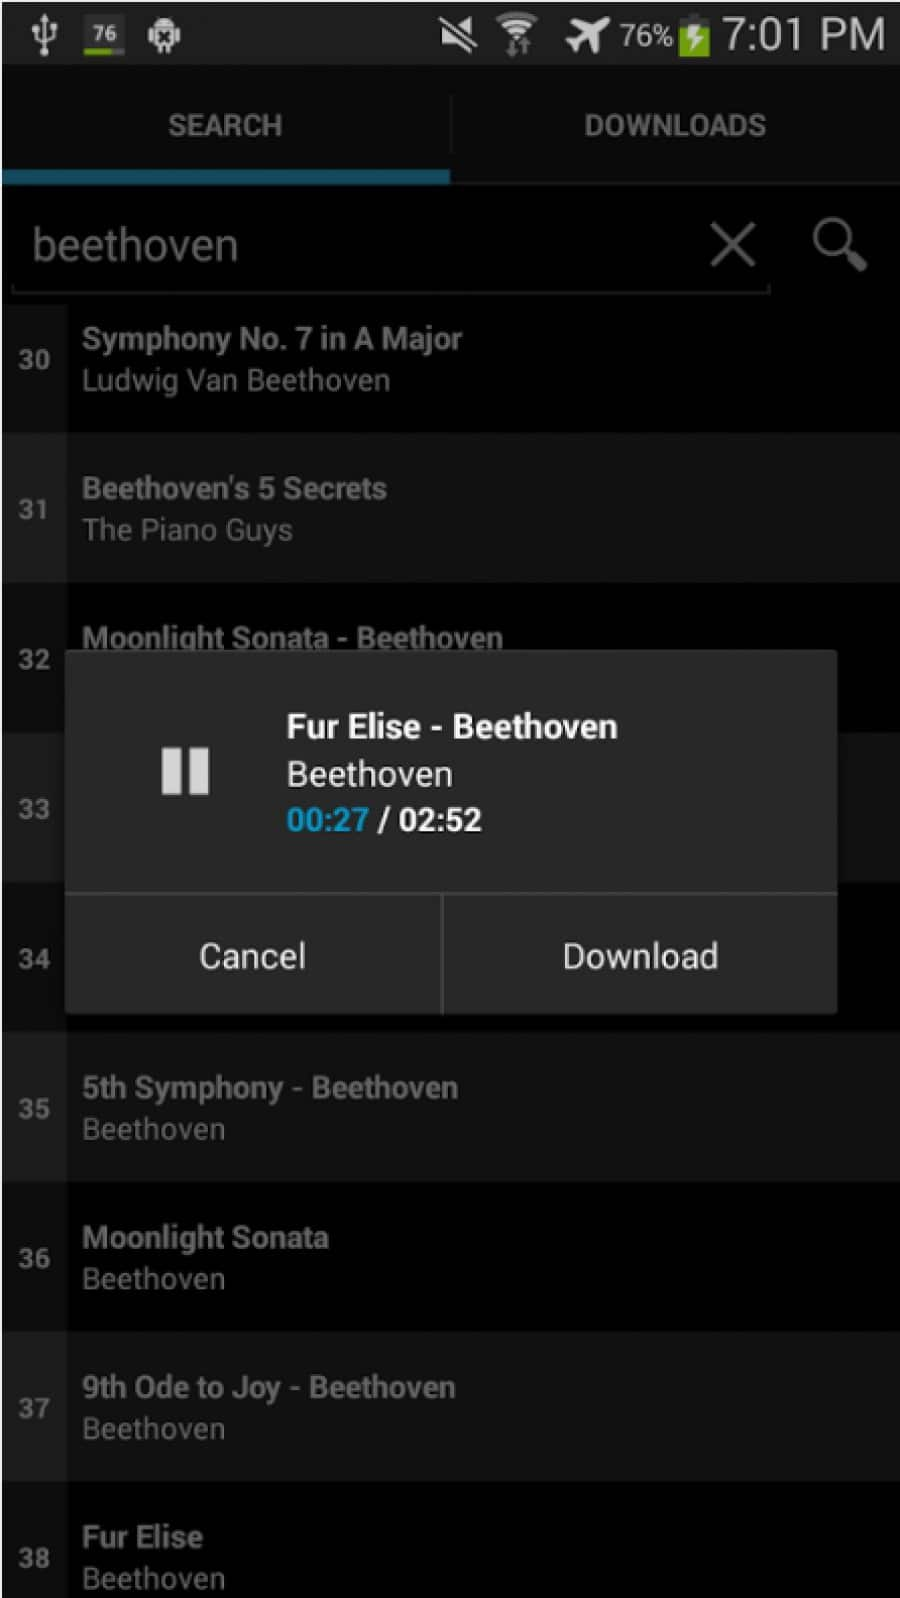 Phone Free Downloadable Music For Android Phones 19 best music downloader apps for android with free supercloud song app android